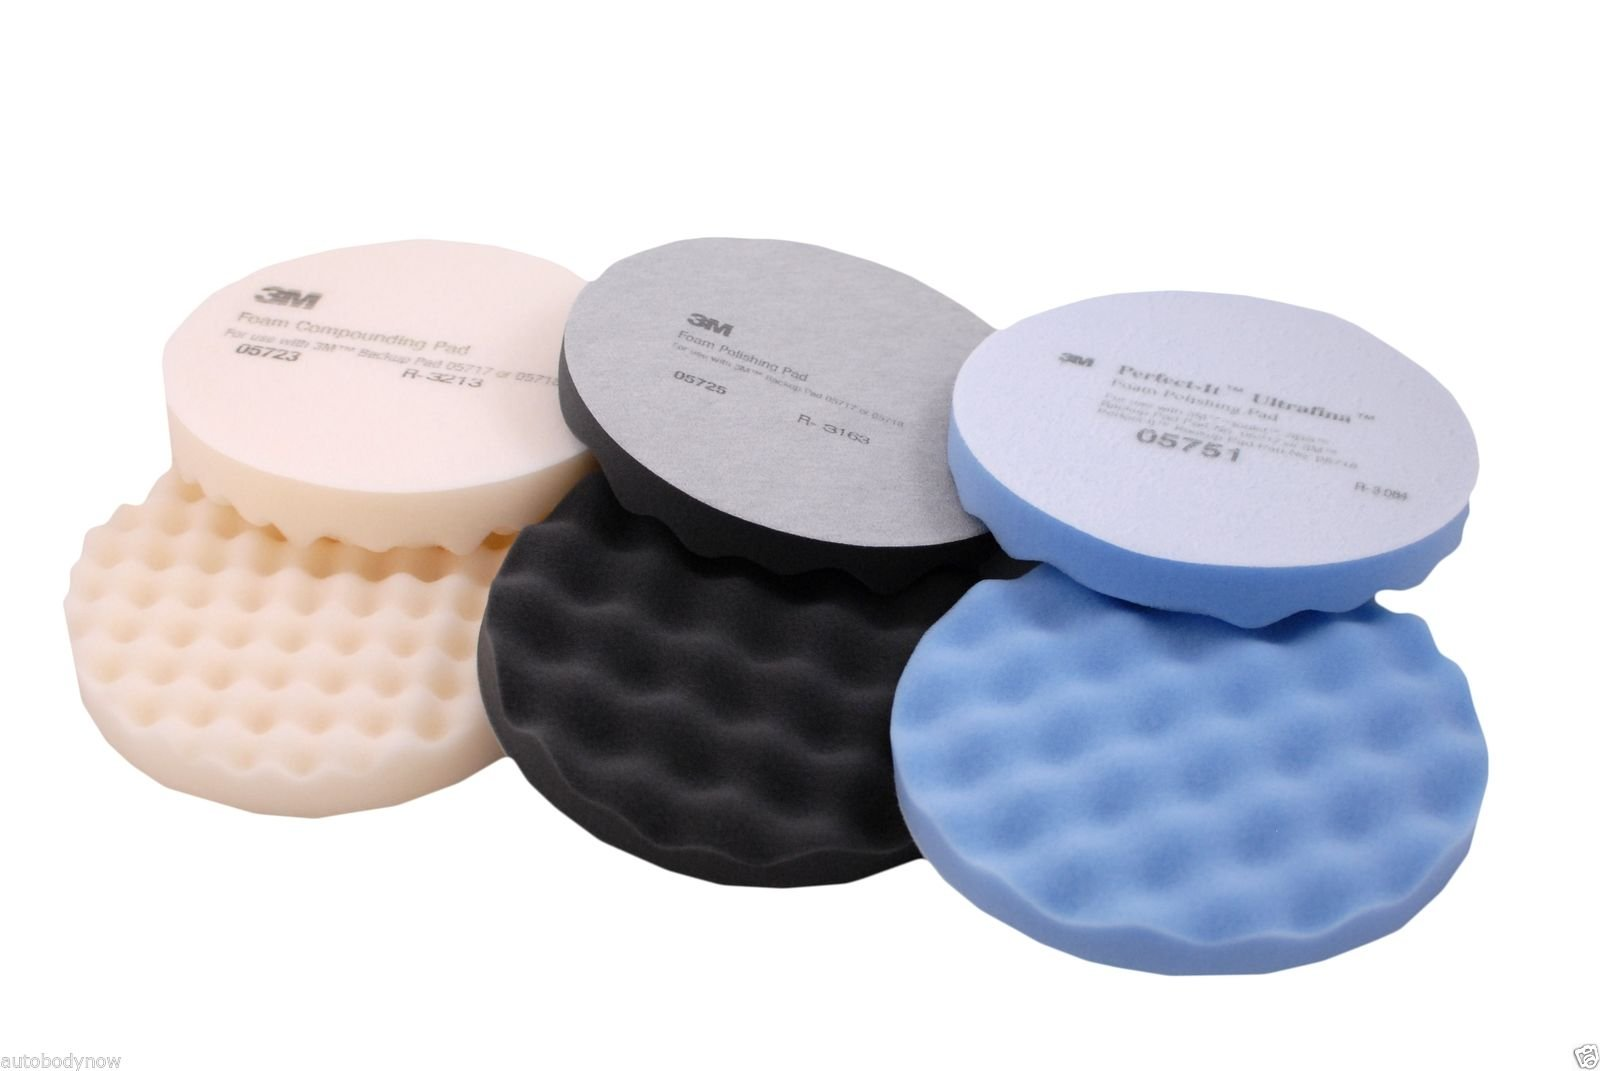 3M Buffing Pads 2 Each: 05723, 05725 & 05751 Hookit Polish Compound by 3M (Image #1)